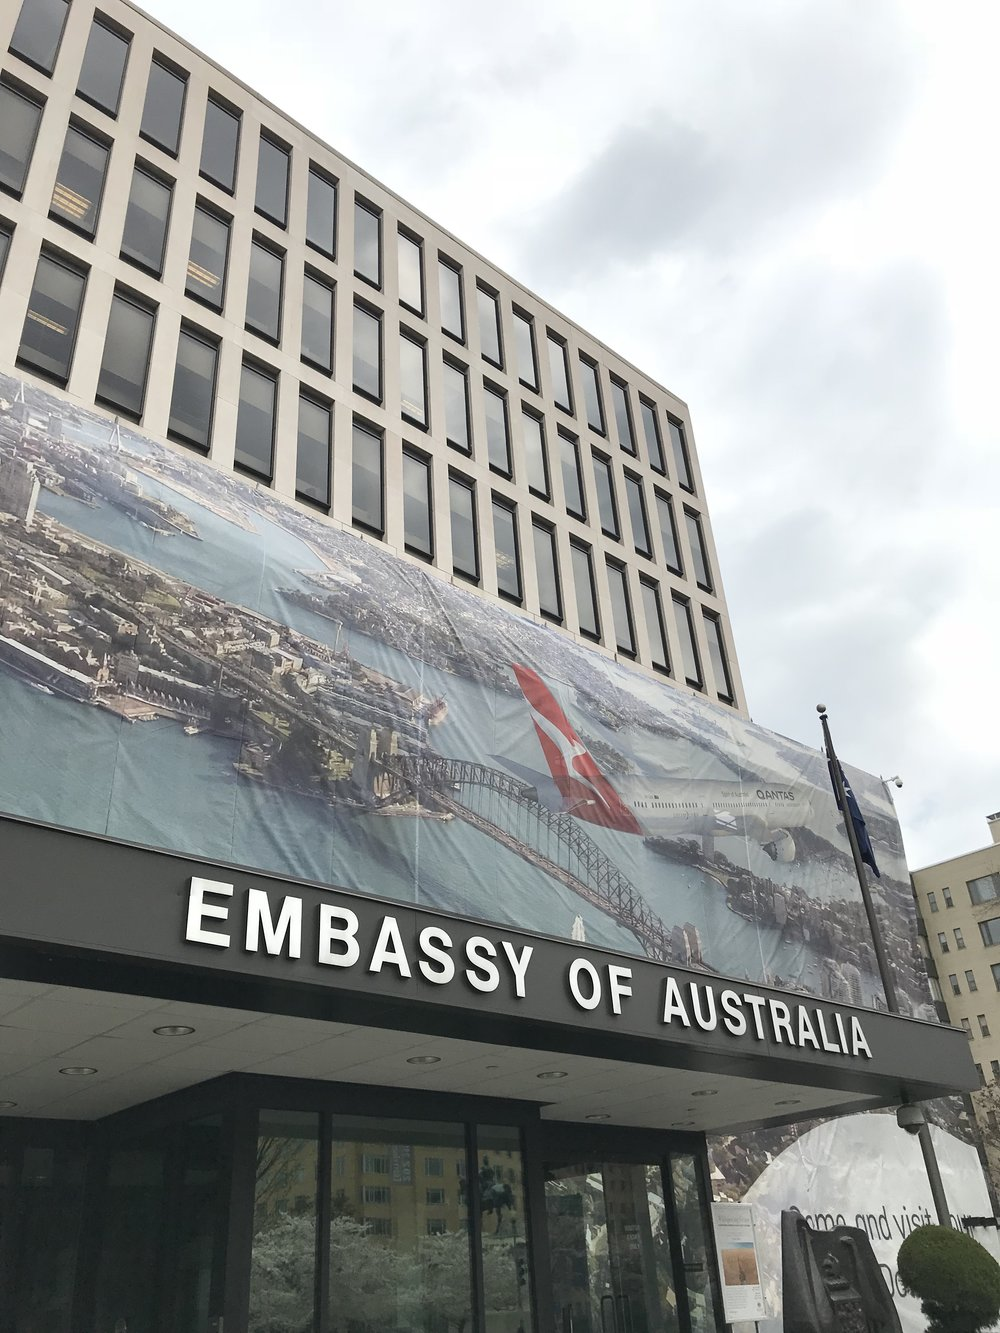 The Embassy of Australia.